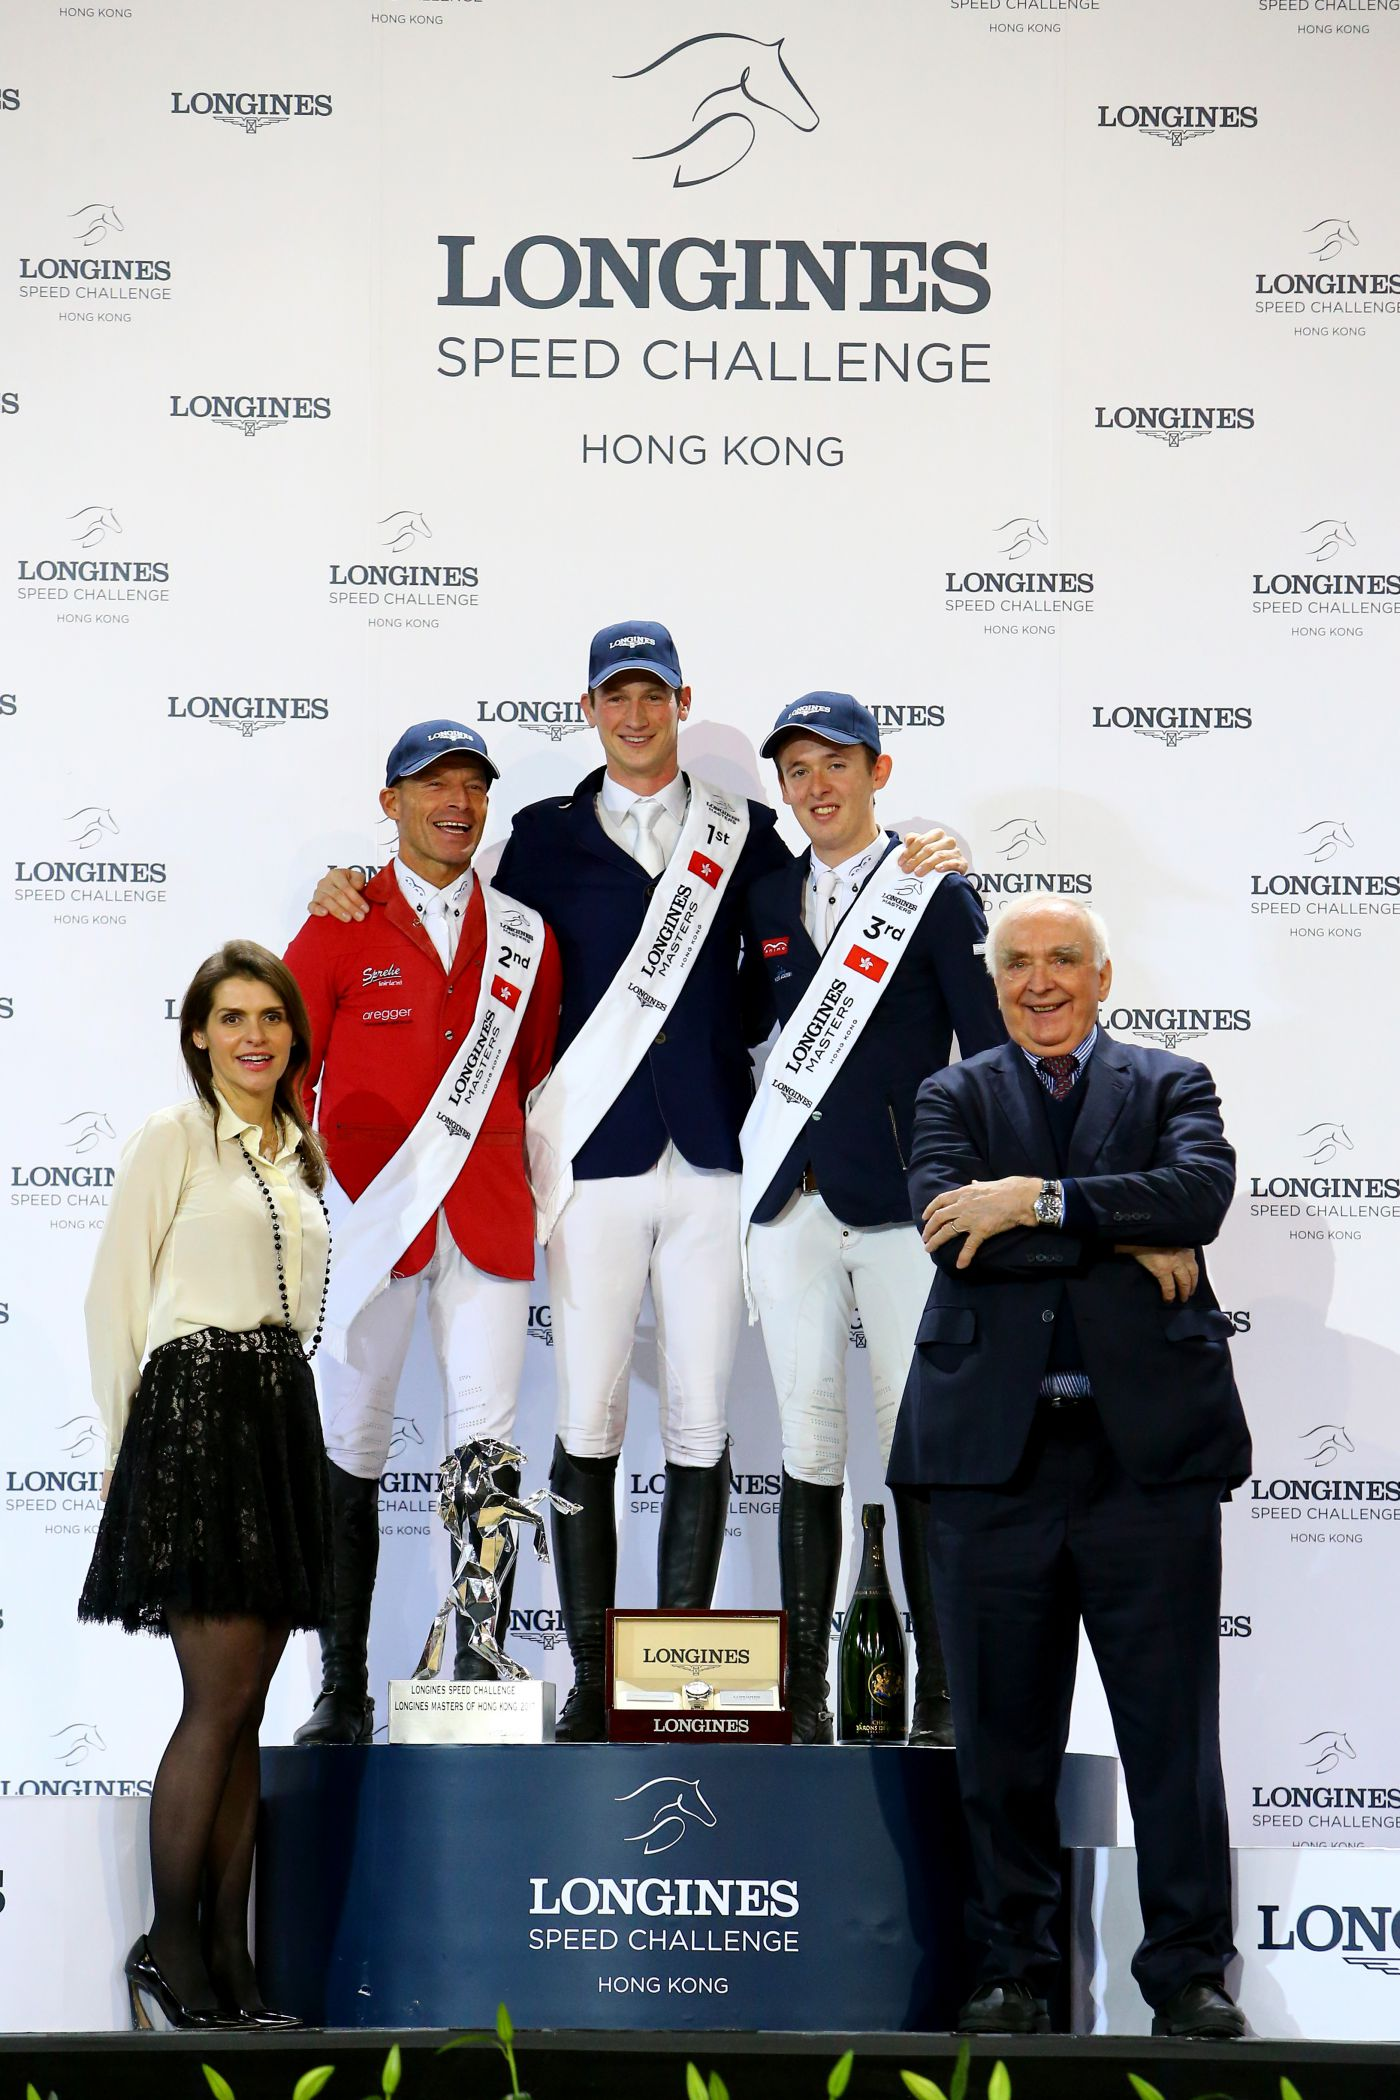 Longines Show Jumping Event: Thrilling emotions during the Longines Speed Challenge, which saw the victory of Daniel Deusser 4